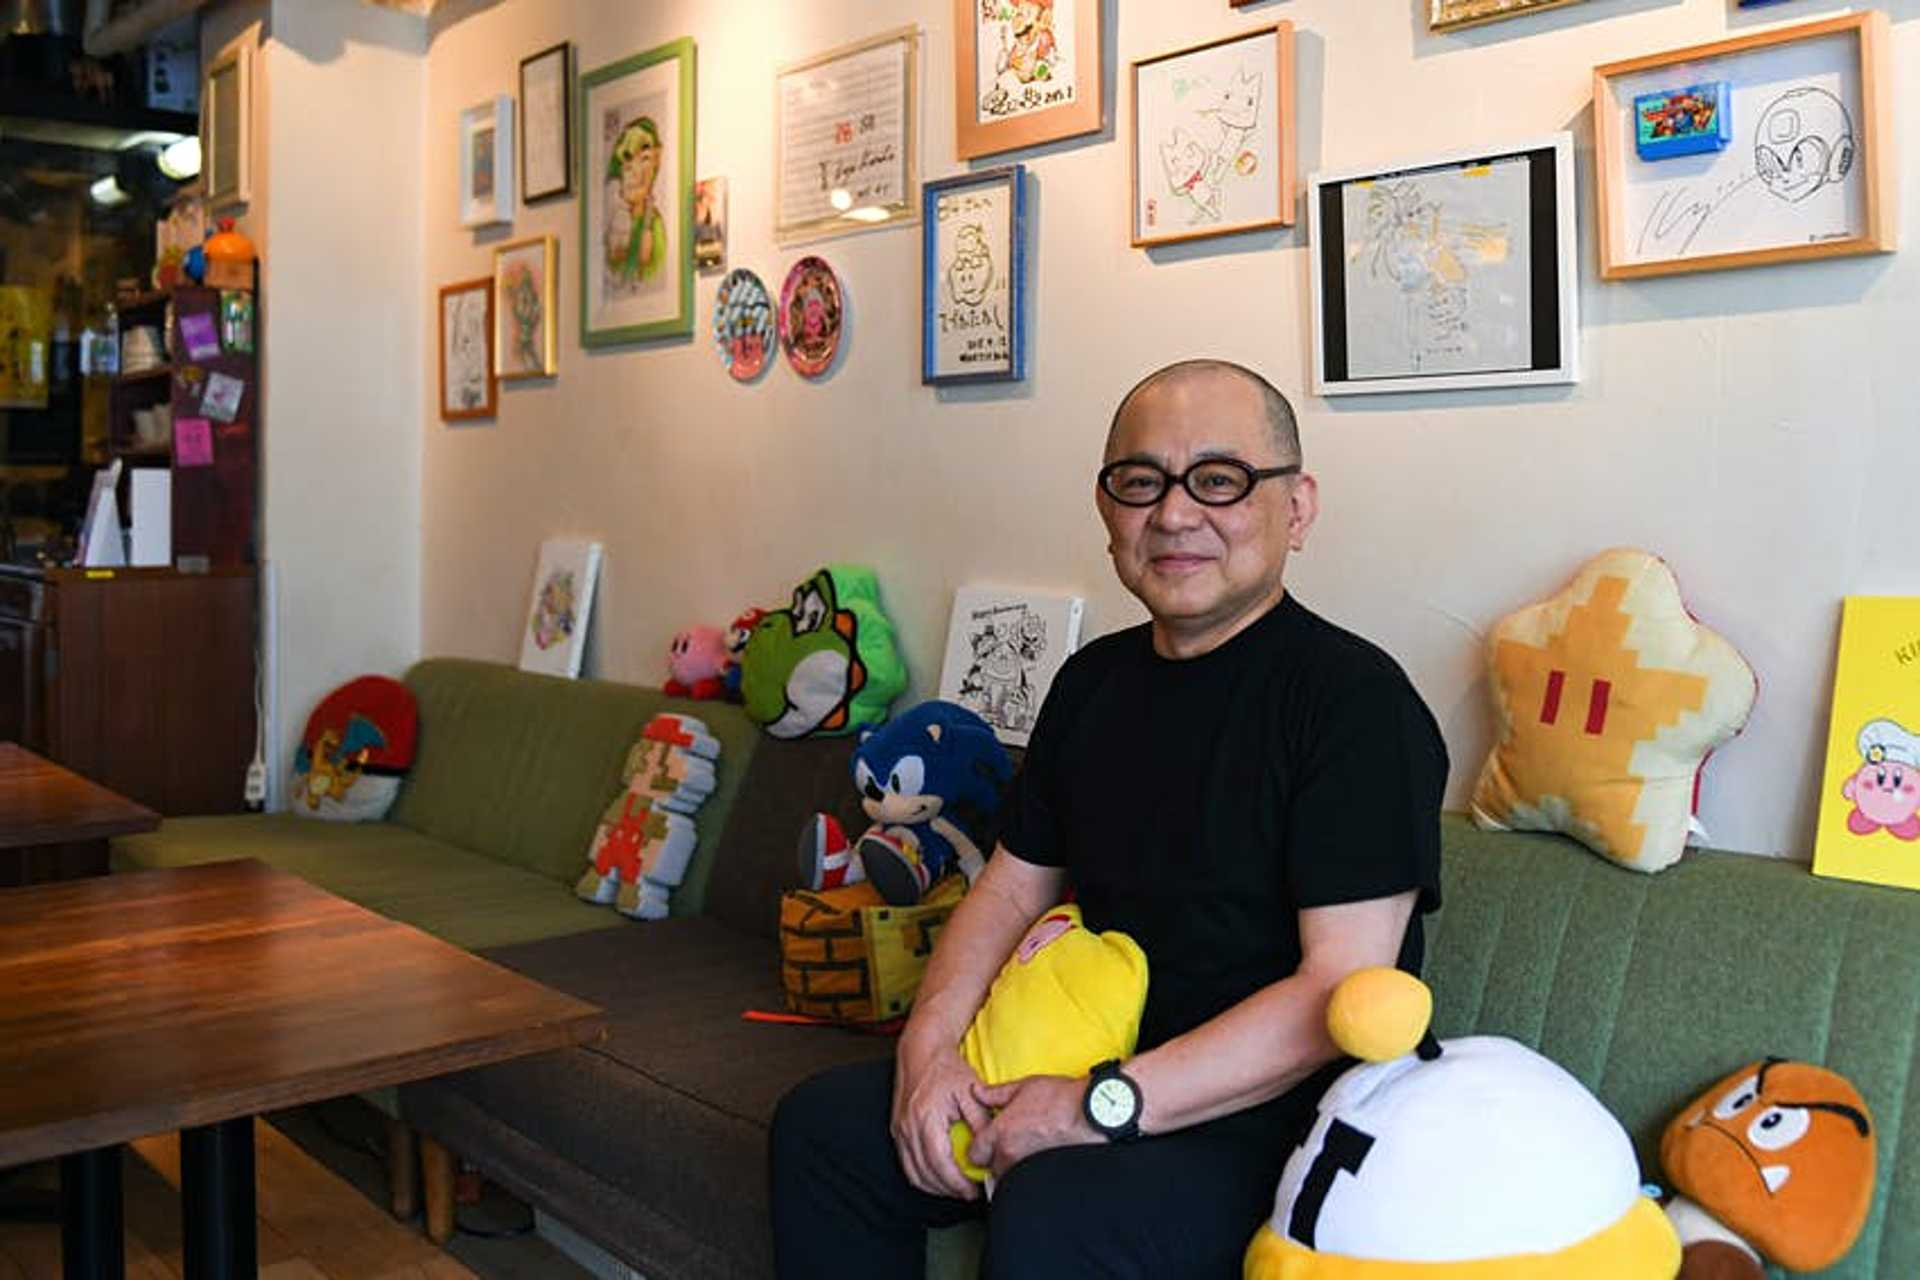 Toru Hashimoto sits inside 84, a secret café for Nintendo fans, in Tokyo, Japan, on Thursday, June 24, 2021. Tucked away at the back of a nondescript building in the hip Shibuya district, the establishment named 84 is the brainchild of a formerNintendo Co.employee Hashimoto, who initially conceived it as a sanctuary for game developers to nerd out and relax. Photographer: Noriko Hayashi/Bloomberg via Getty Images